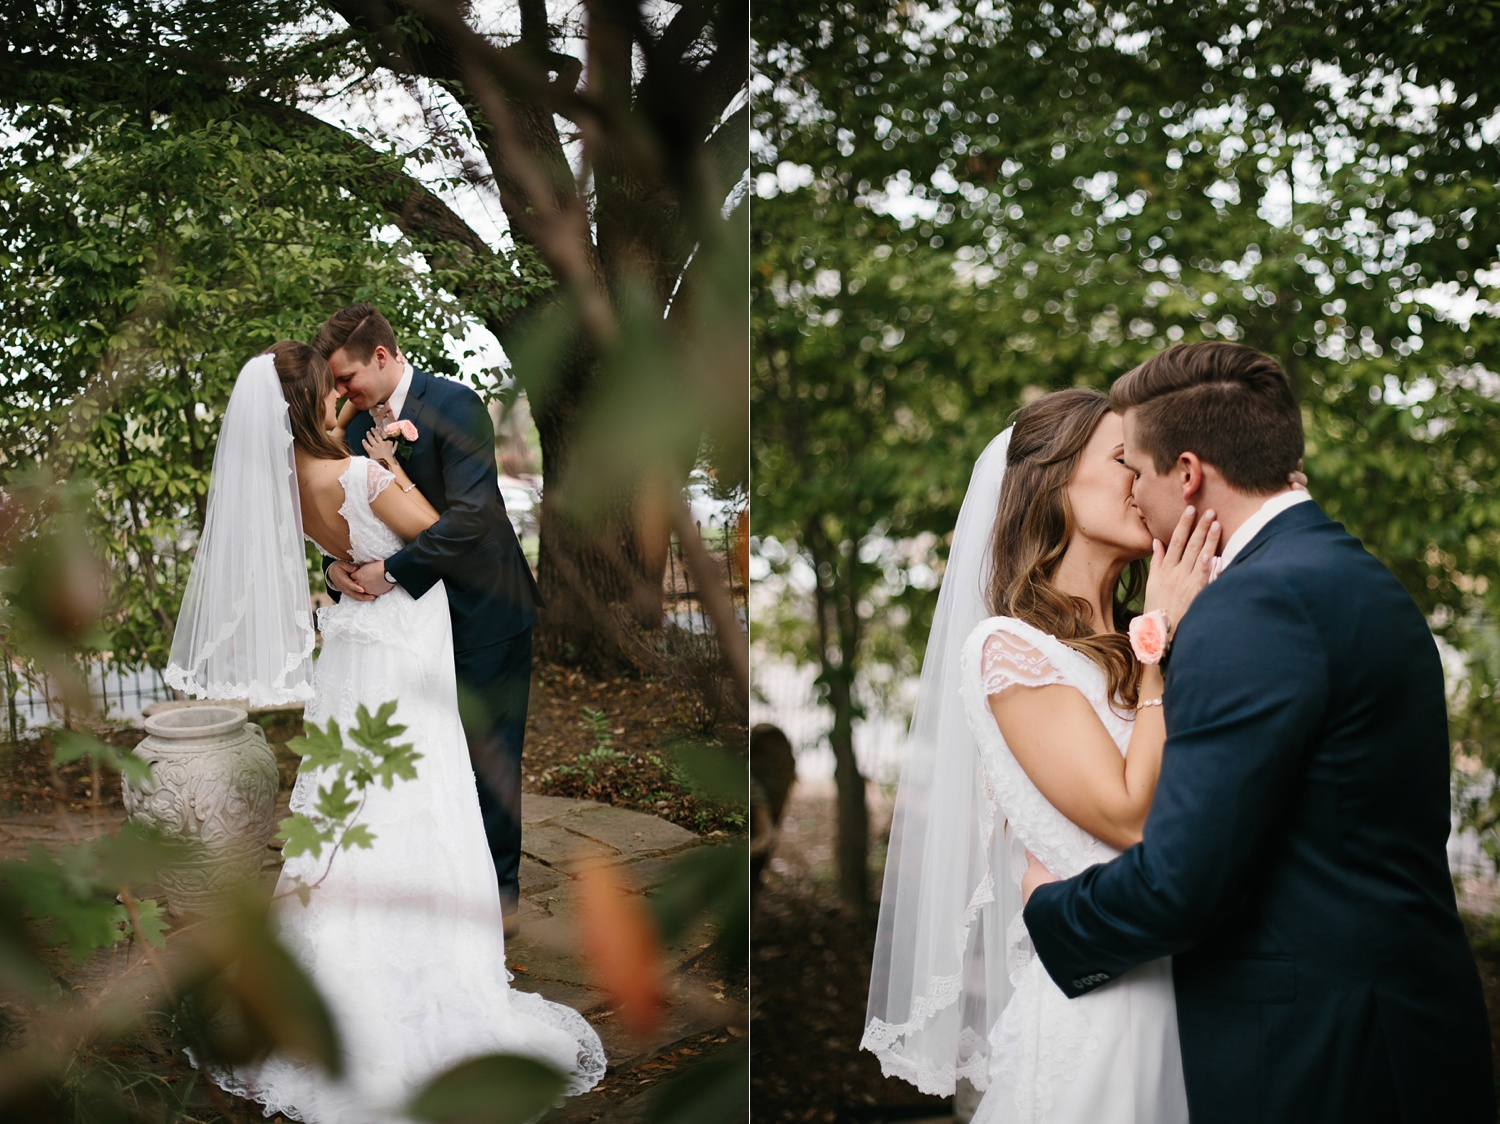 Amber + Daniel an intimate, simple, spring ceremony at Heard Craig Center and reception at Gather in McKinney, Texas by North Texas Wedding Photographer Rachel Meagan Photography 082